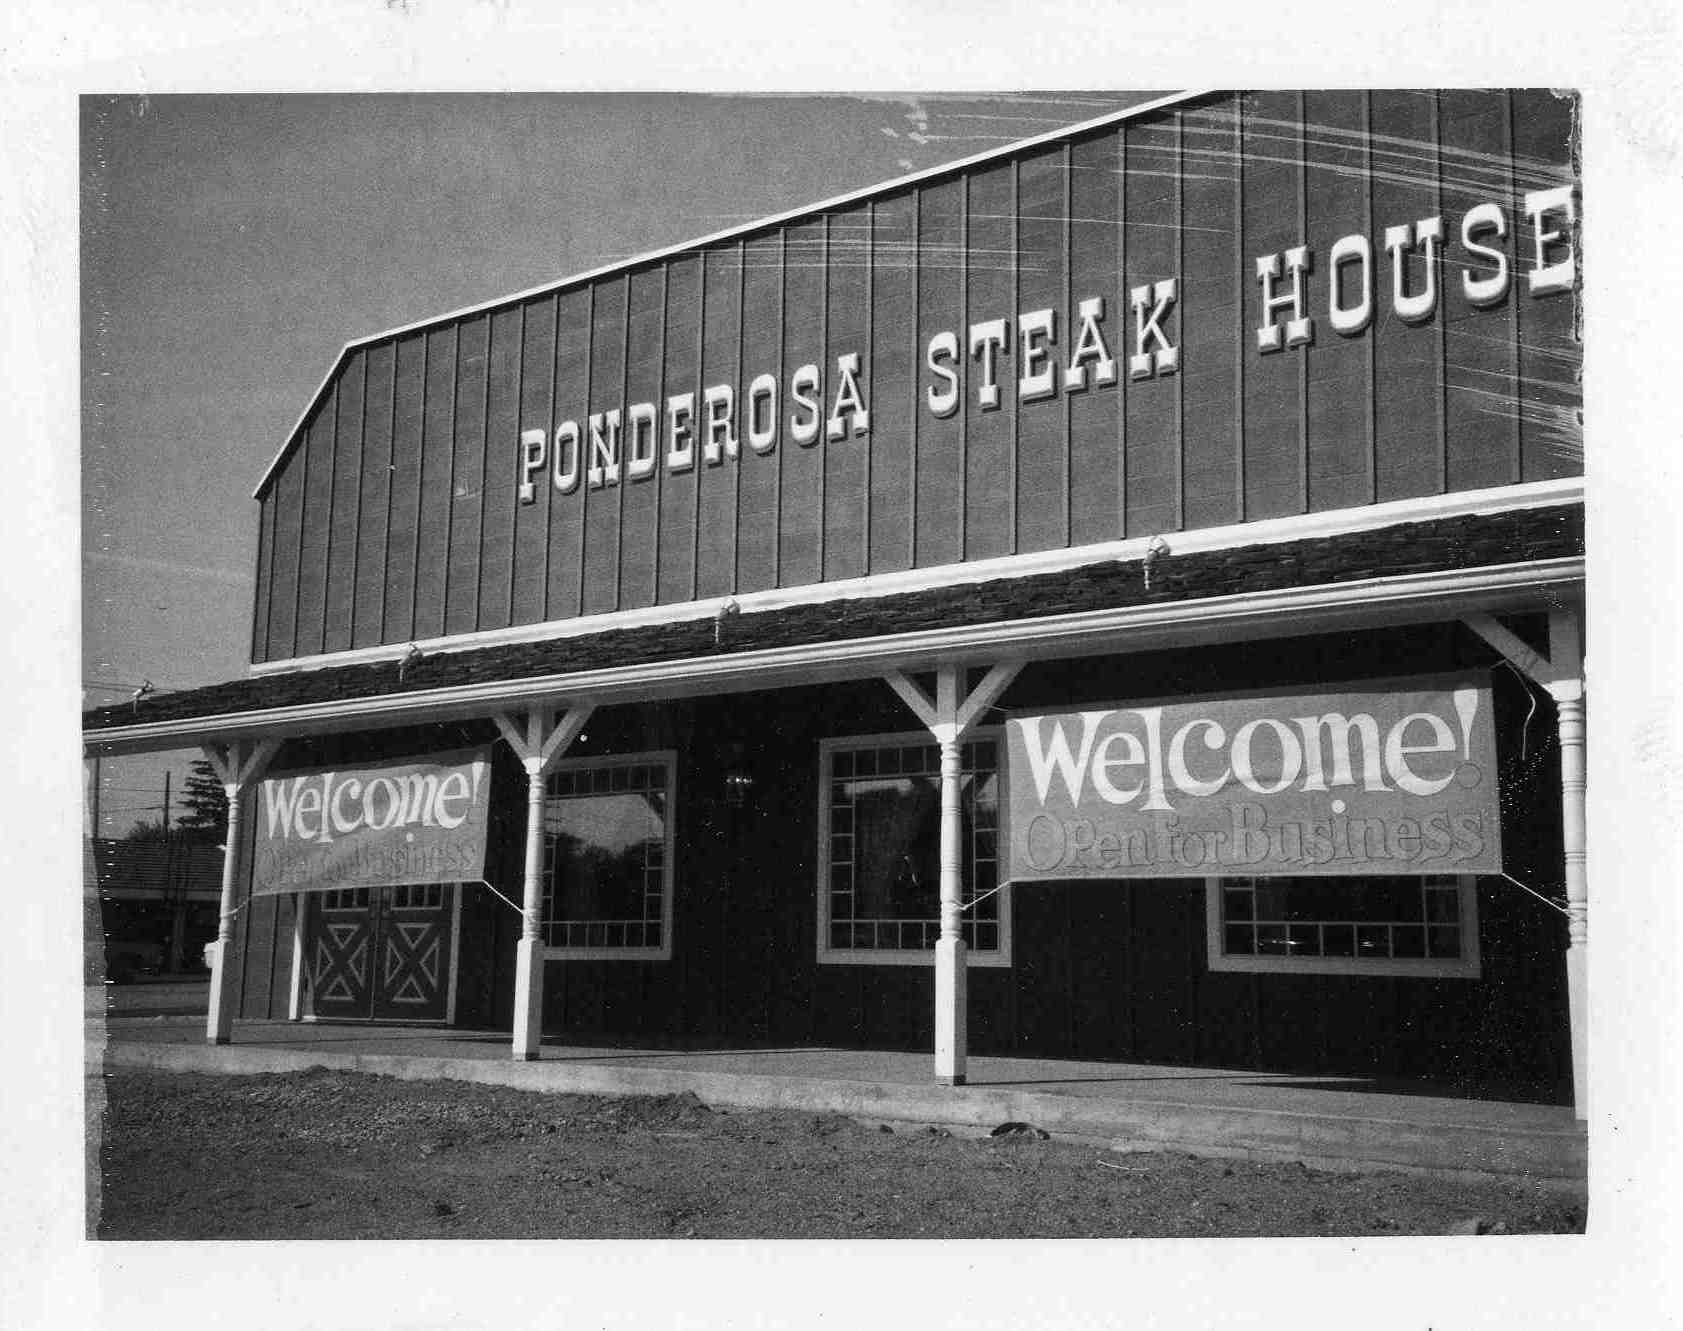 Ponderosa Steak House, 1973 image